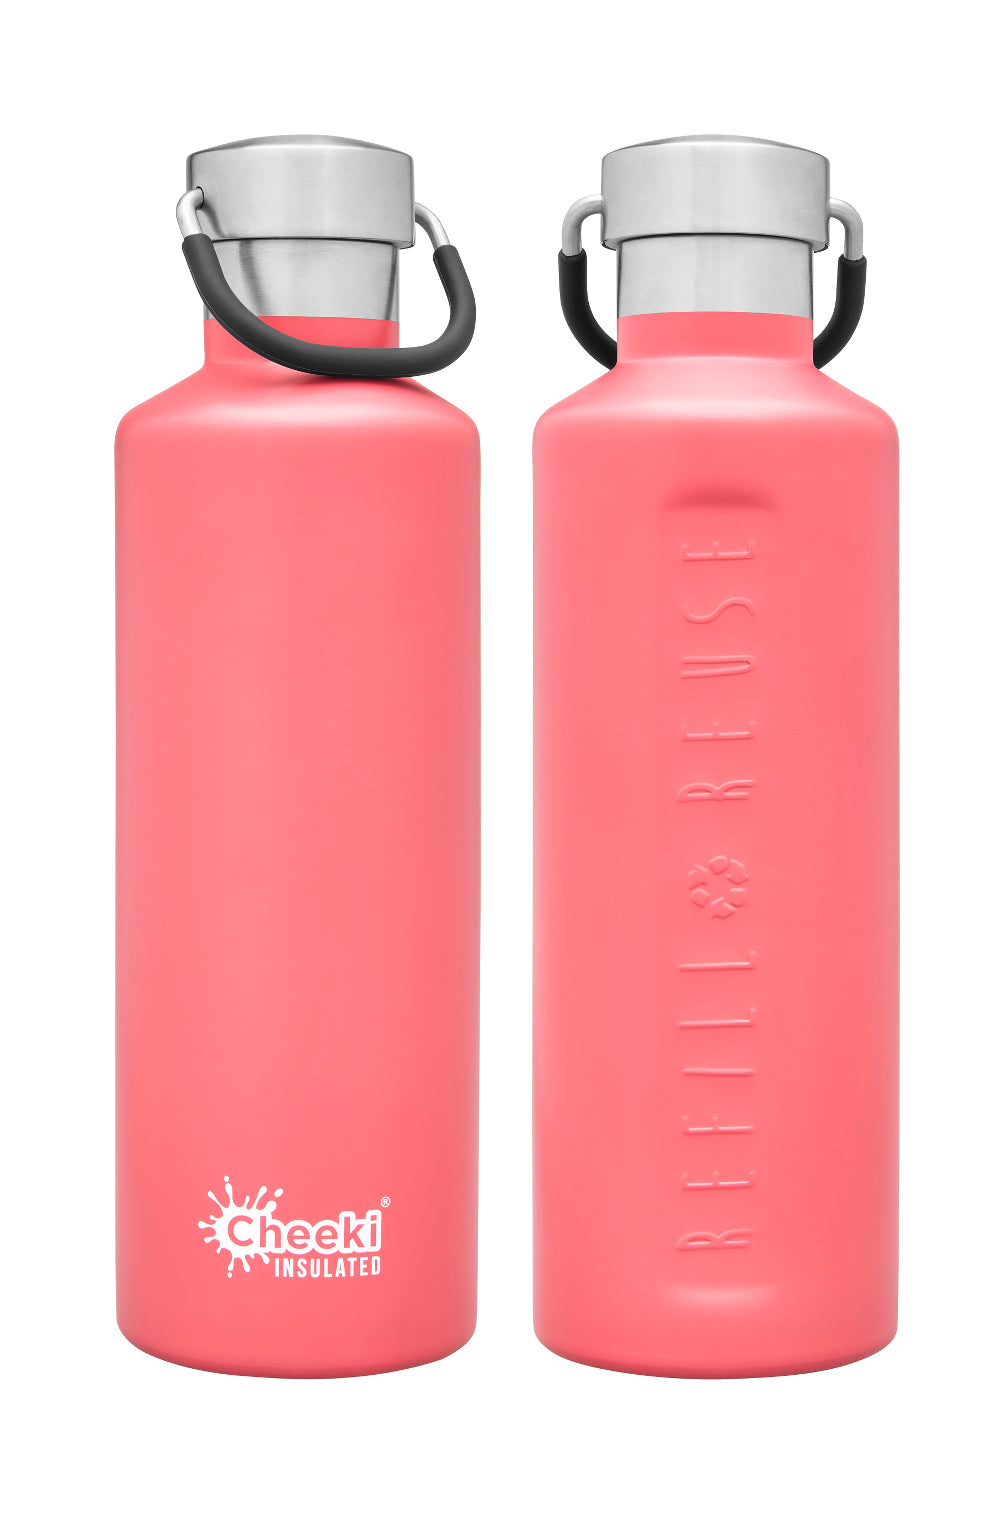 Cheeki | Cheeki Classic 600ml insulated drink Bottle | Plastic Free Living | Environmentally Friendly Homewares